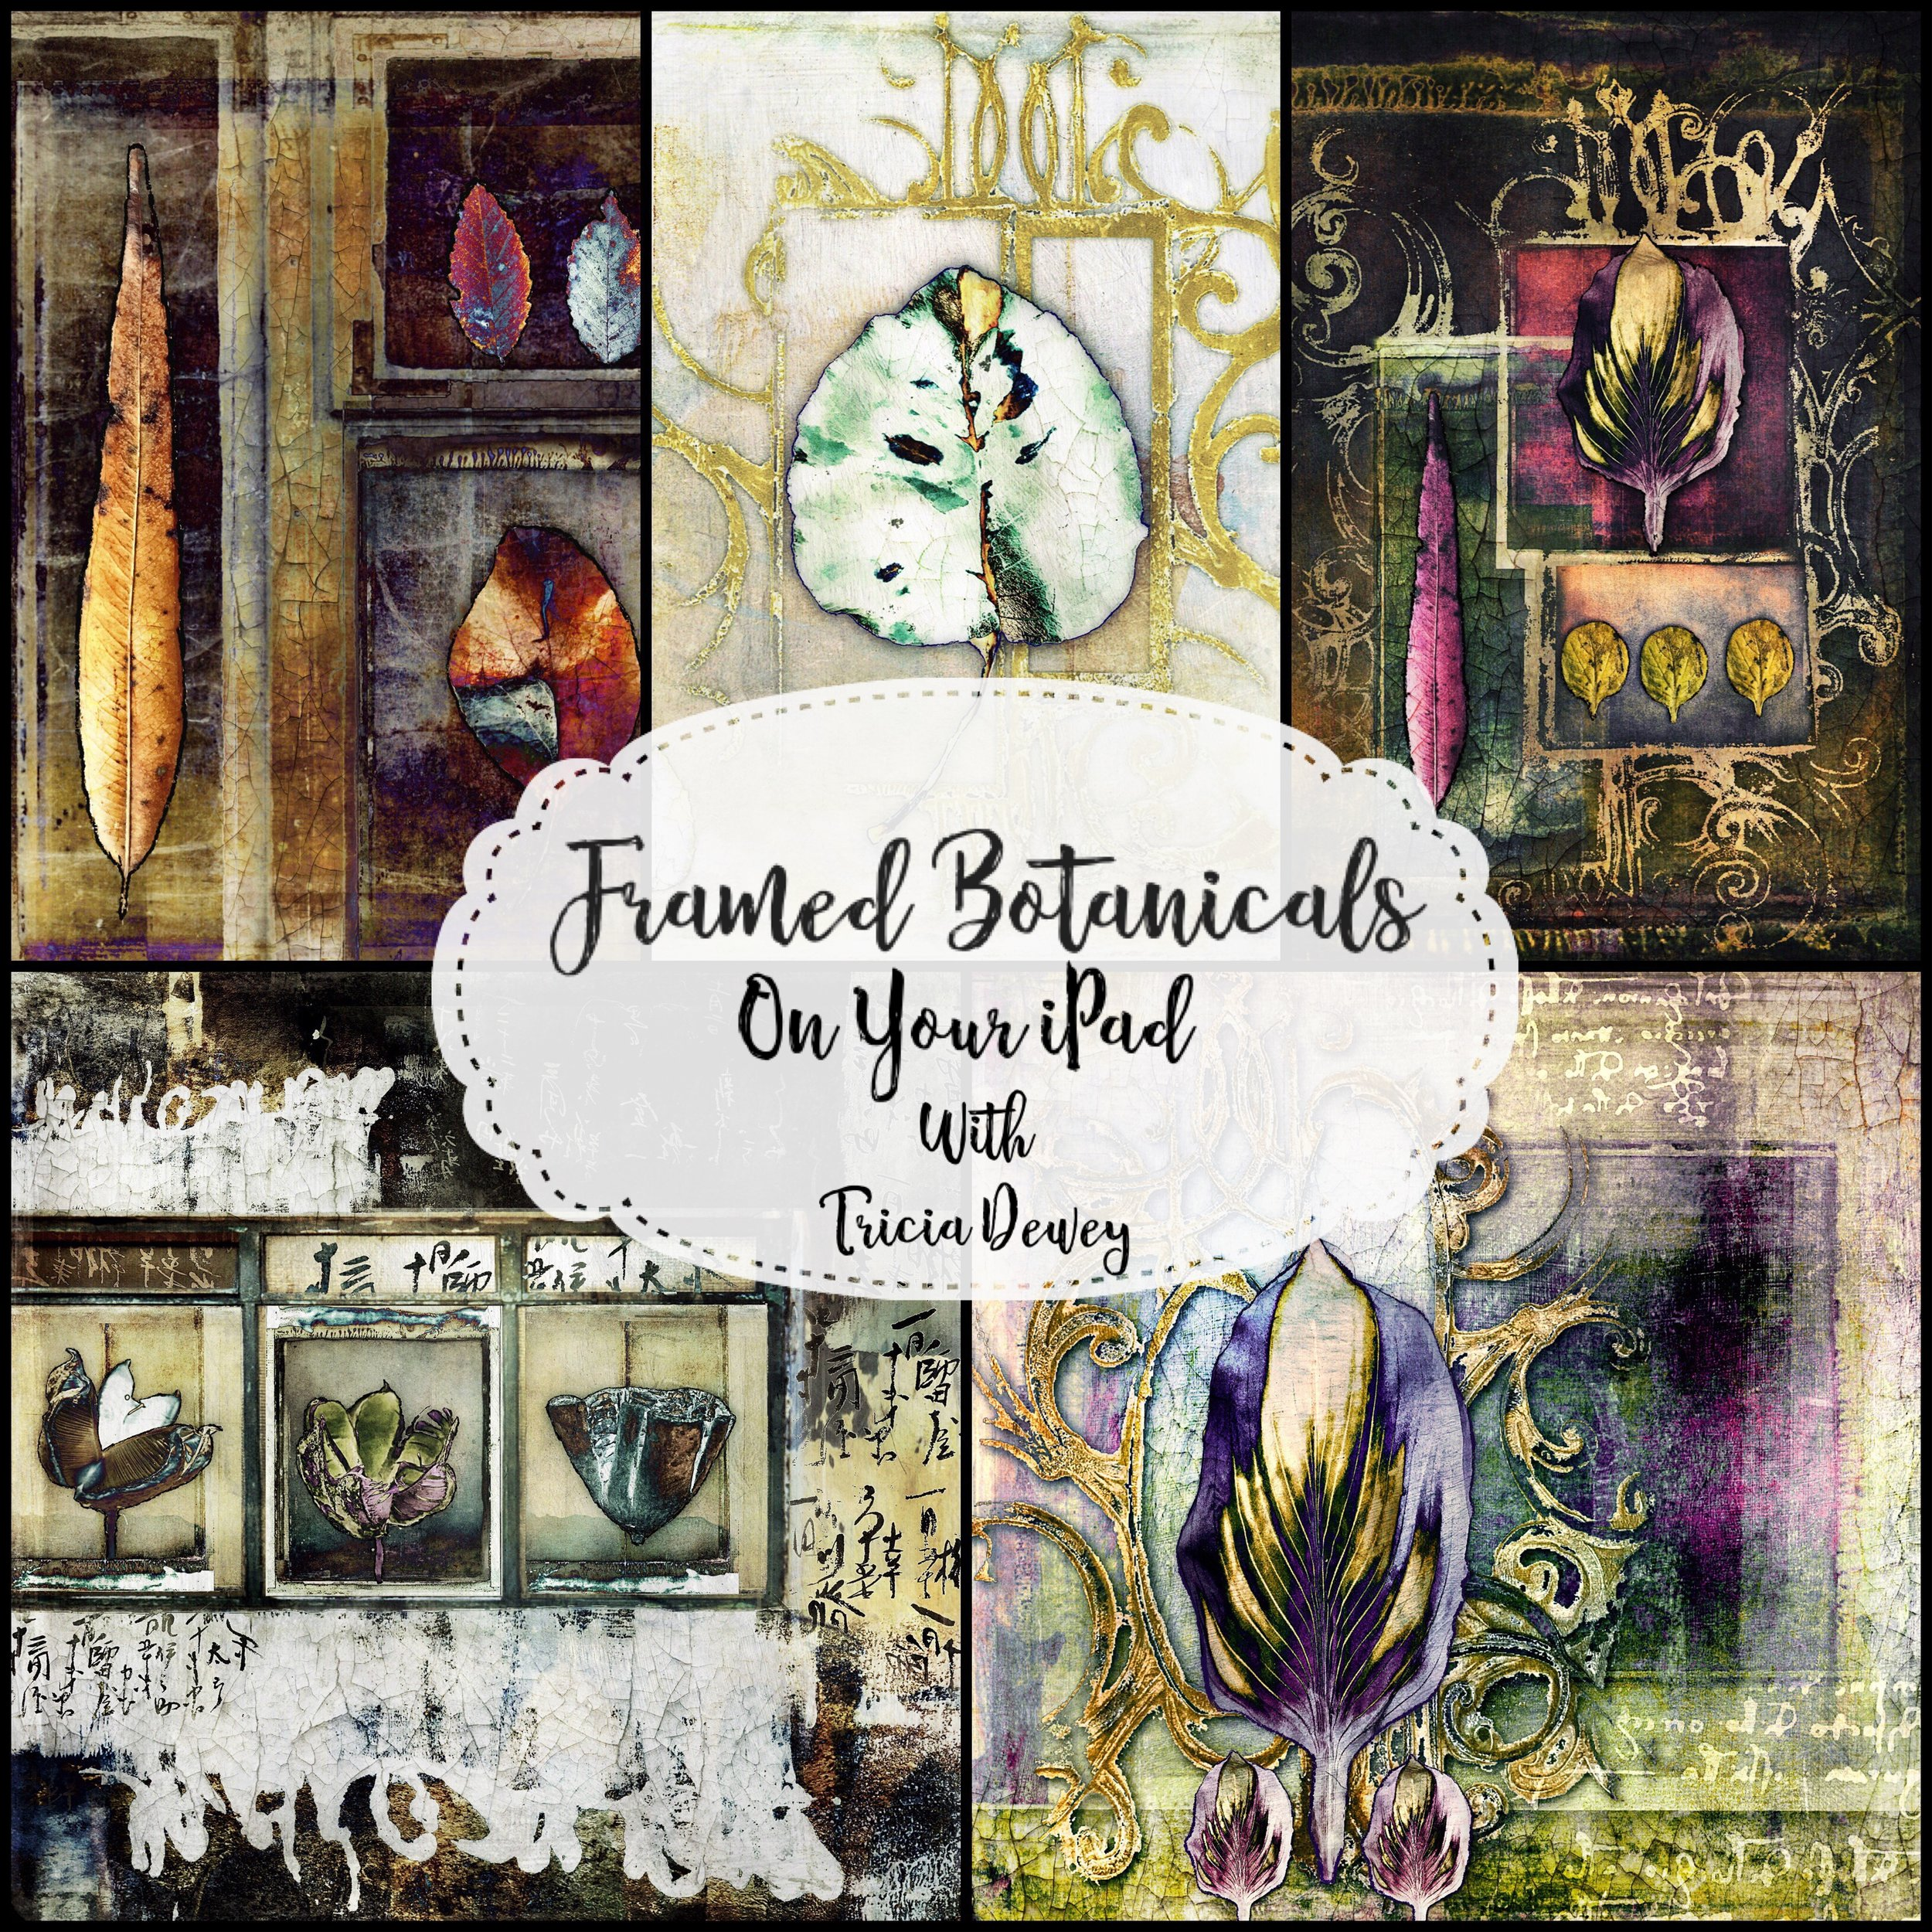 Framed Botanicals - Create your own Frames & Botanical Pieces on the iPadby Tricia Dewey